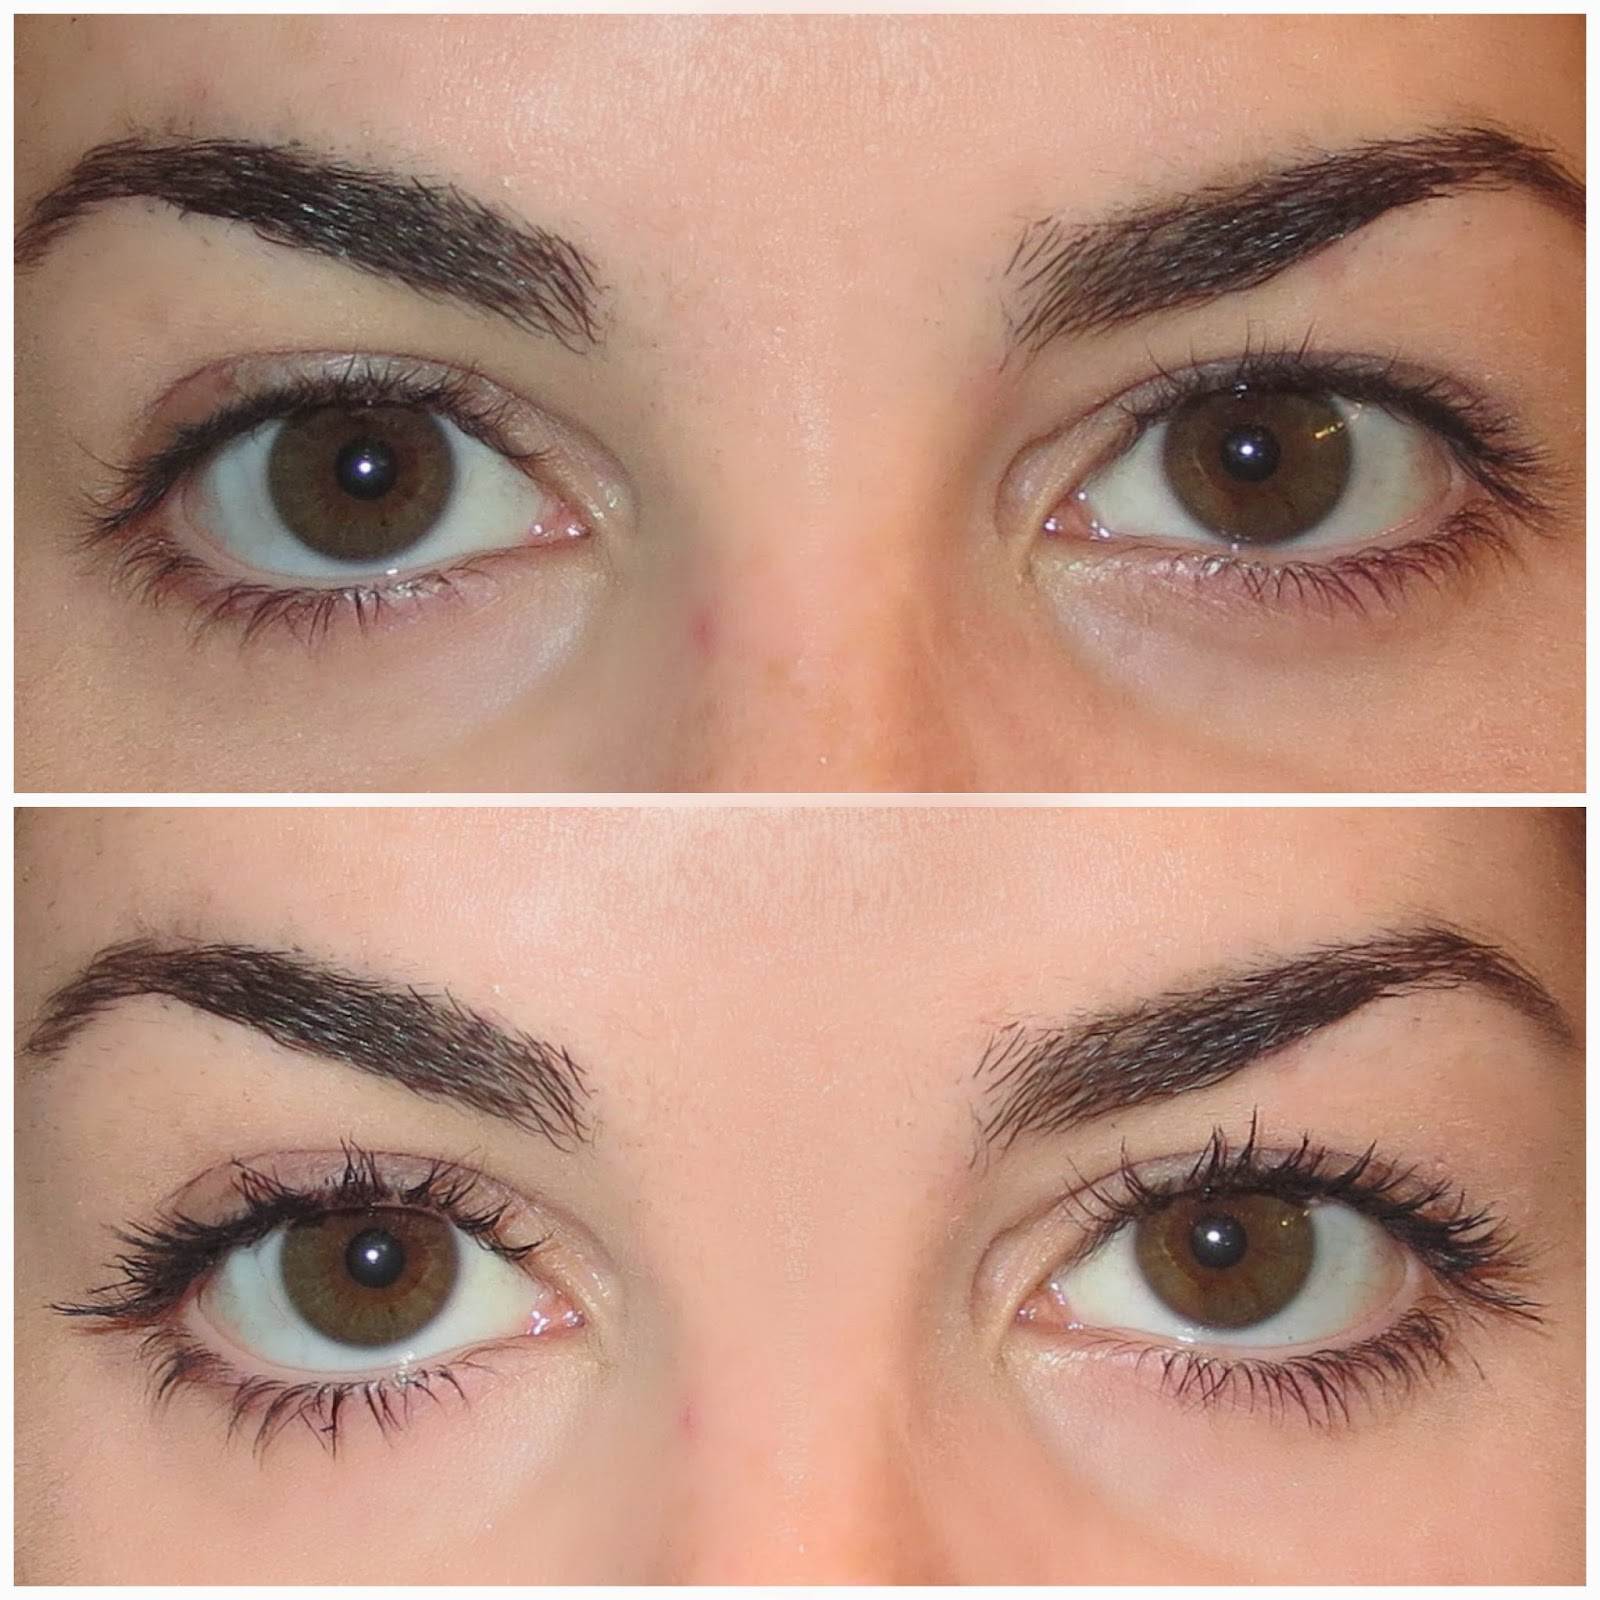 a picture of lashes before and after one coat of Benefit Roller Lash mascara